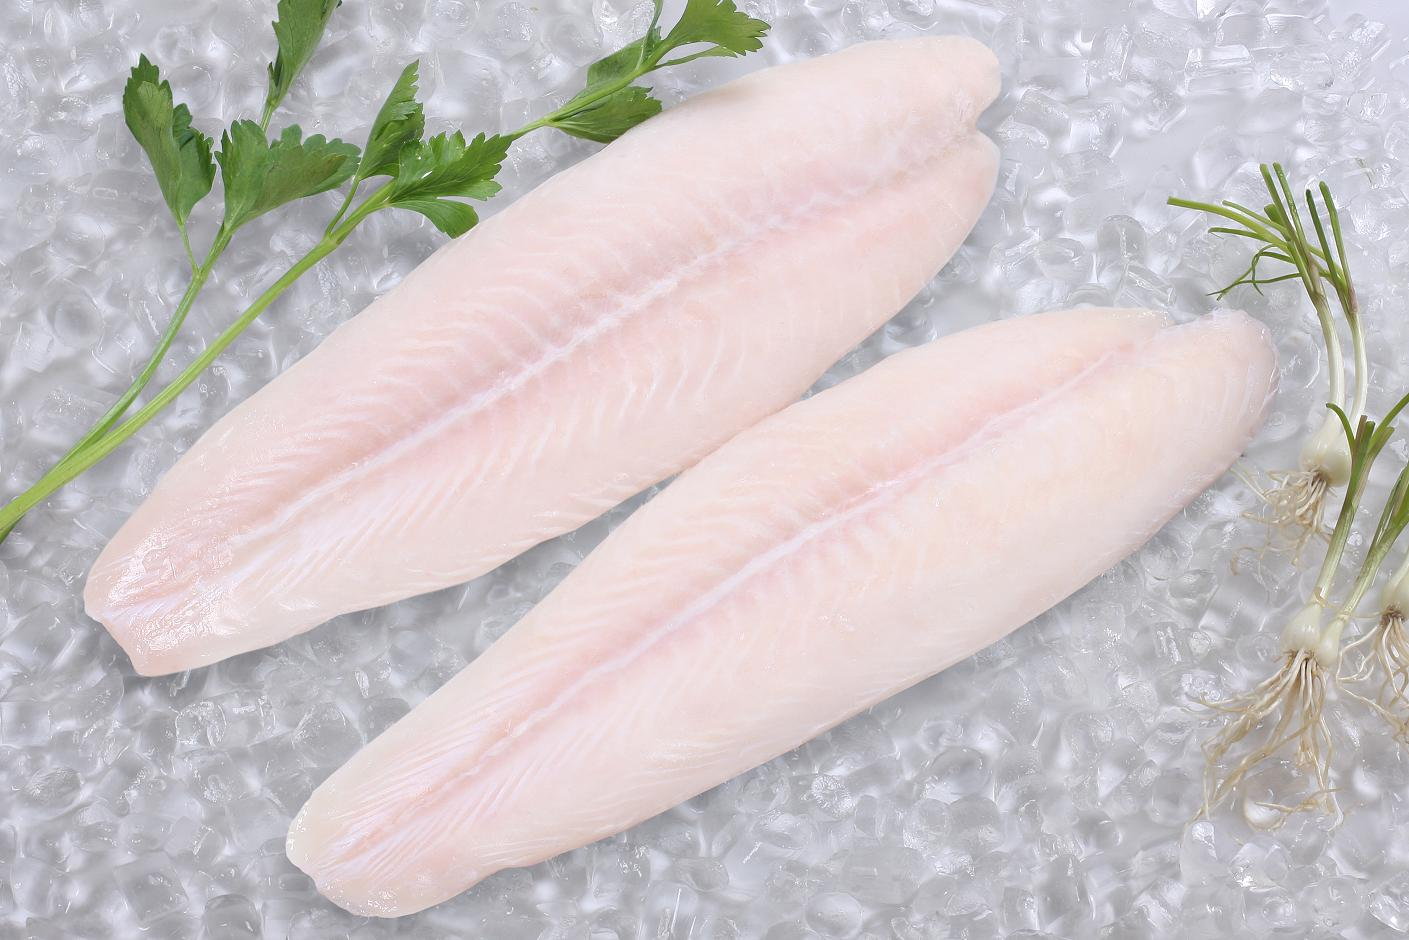 Frozen pangasius fish products indonesia frozen pangasius for What is pangasius fish